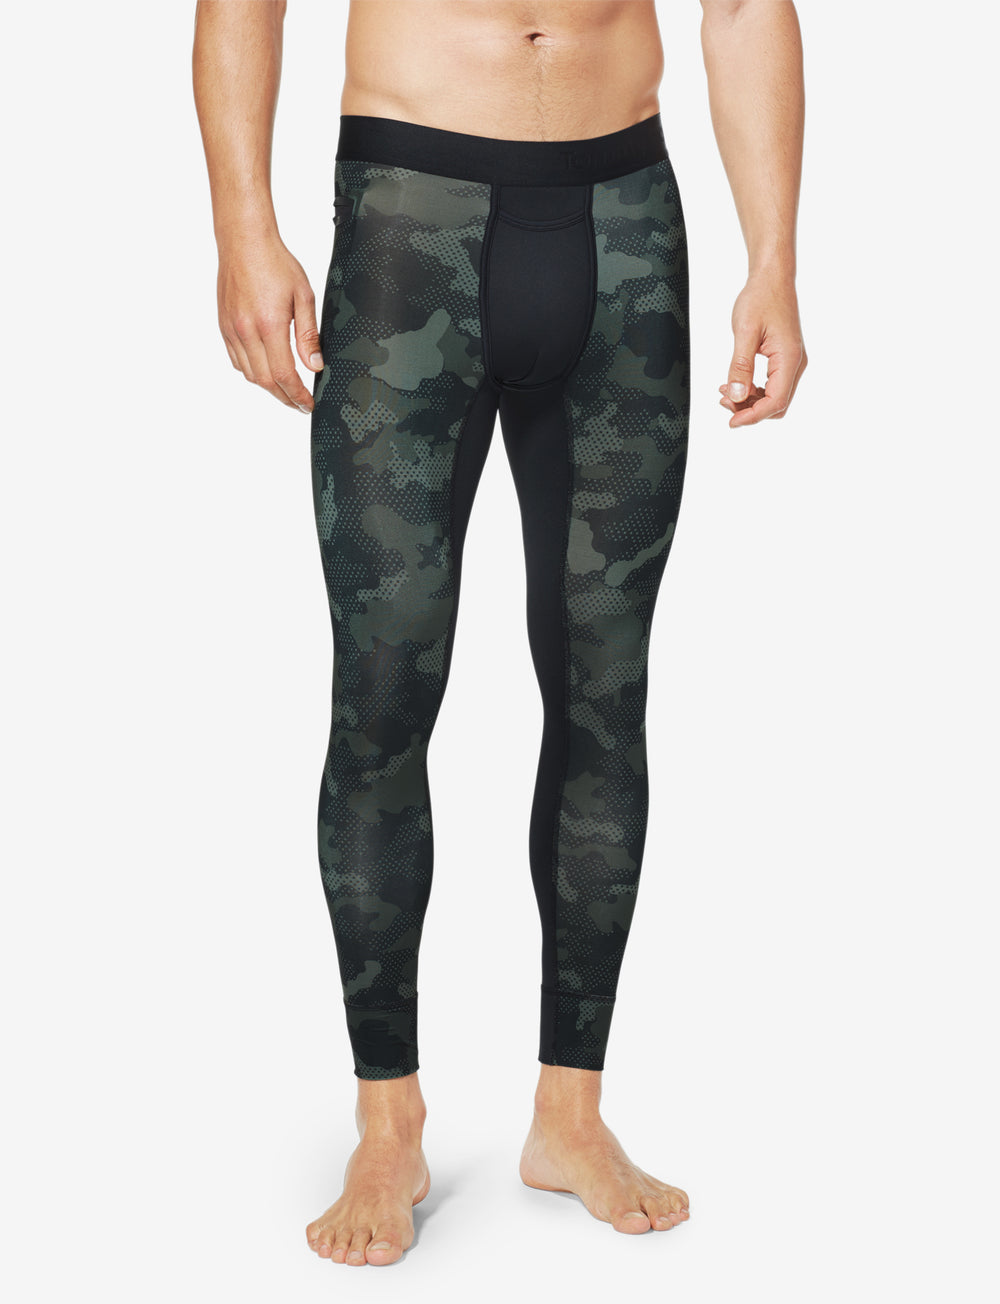 360 Sport 2.0 Camo Leggings (Full-Length) Details Image